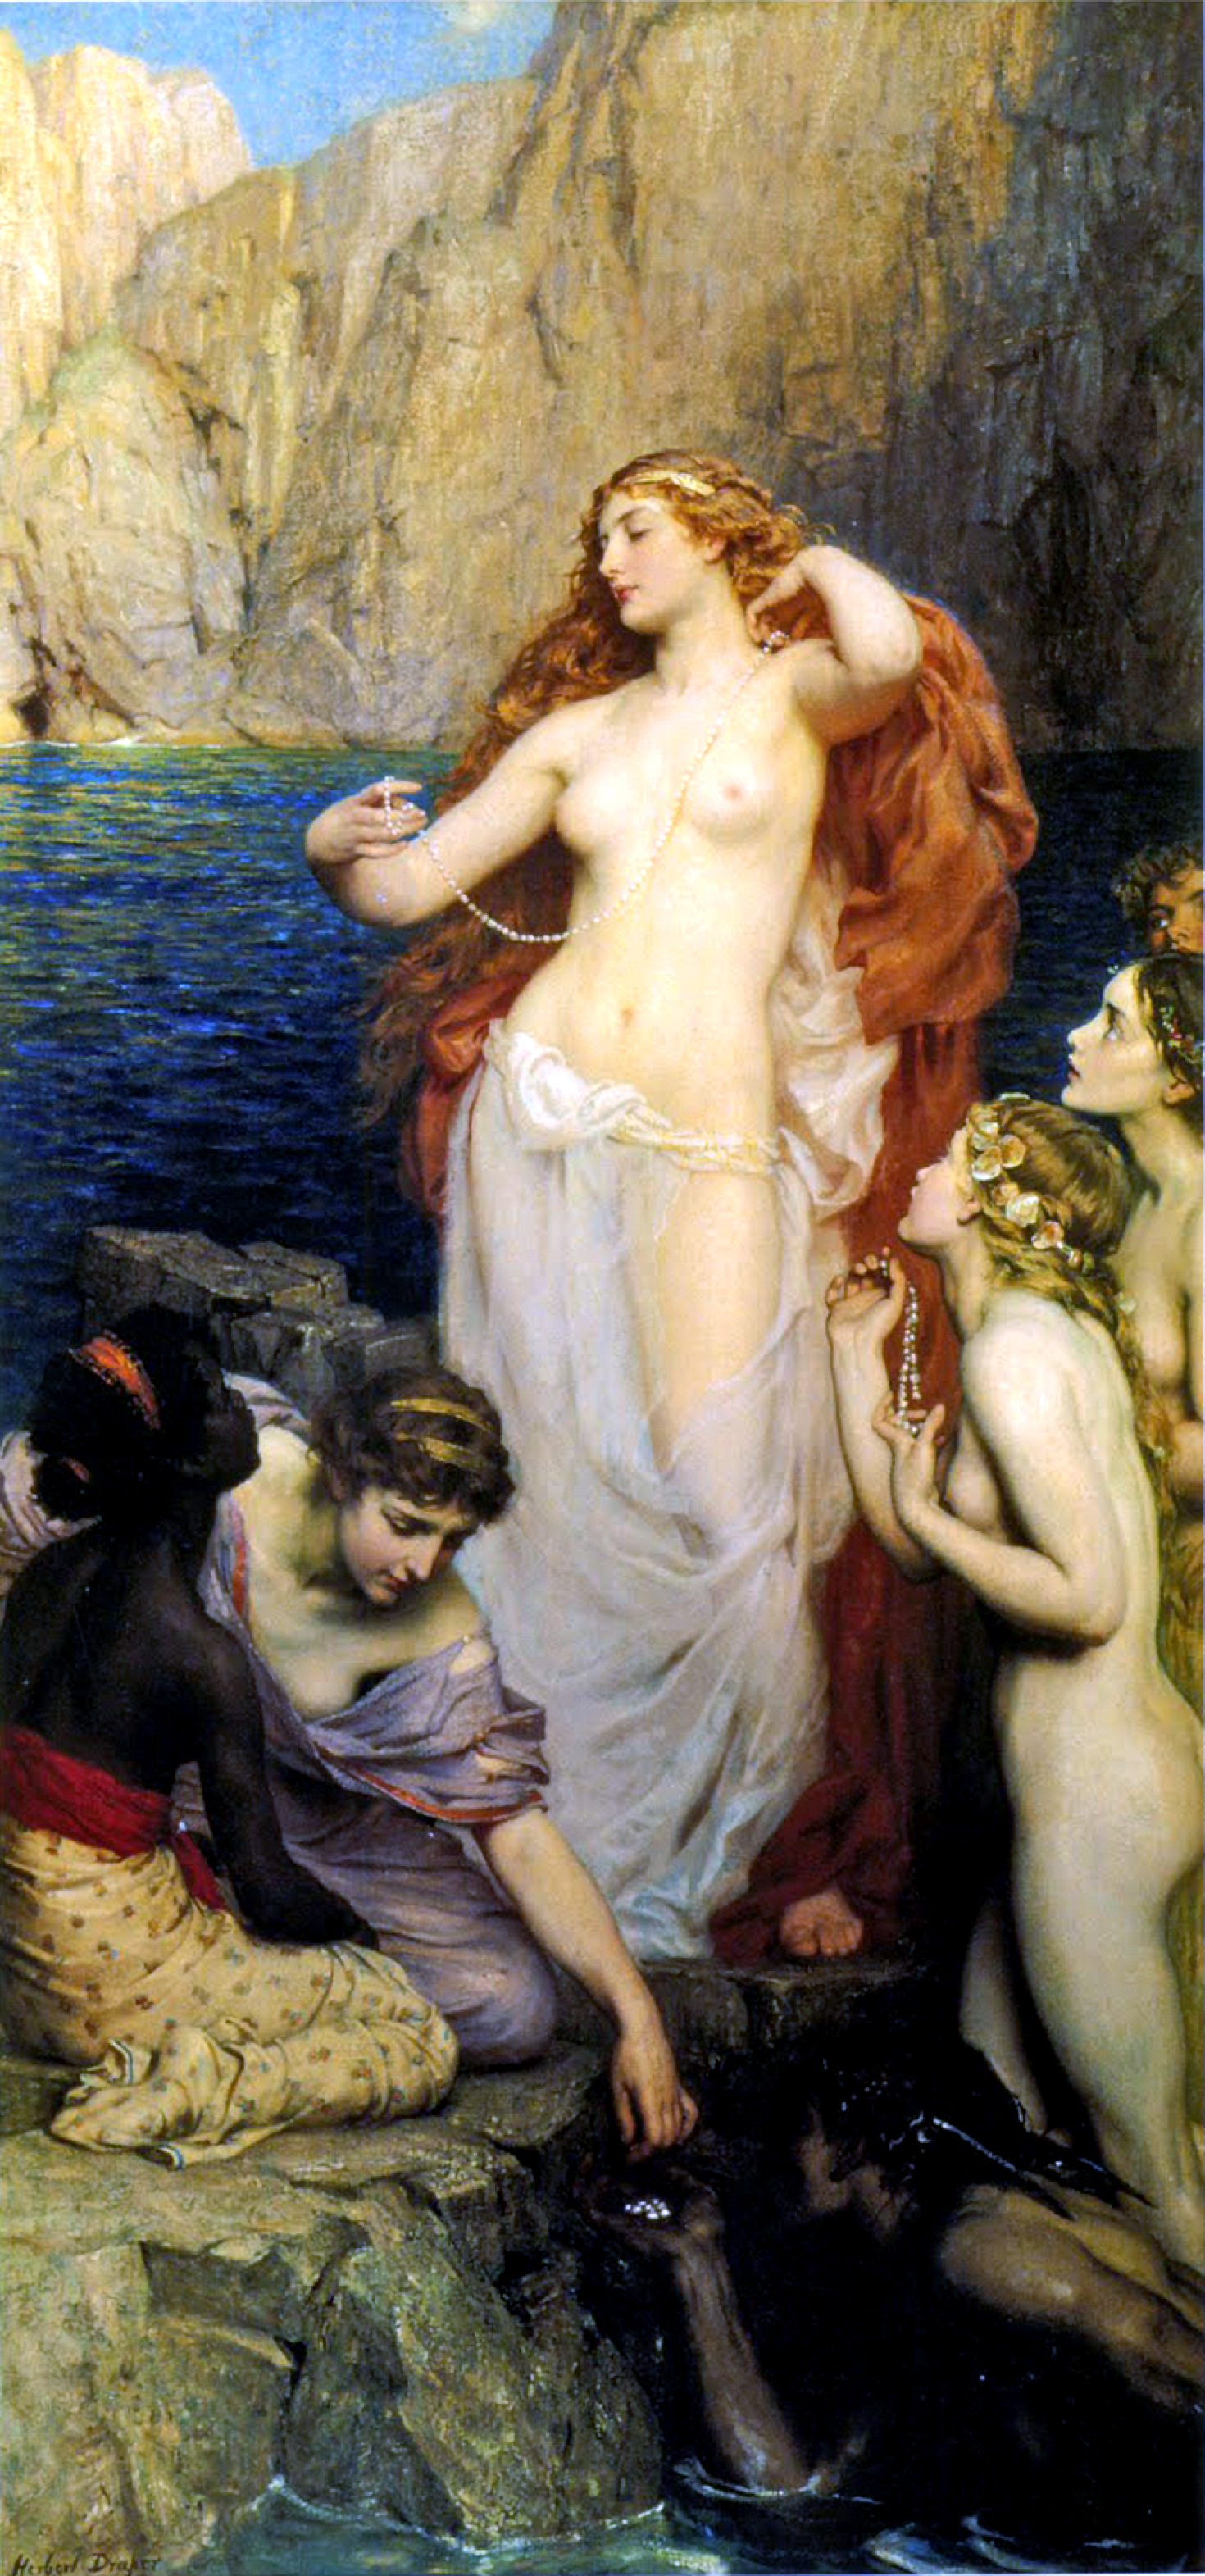 http://upload.wikimedia.org/wikipedia/commons/0/0f/Herbert_James_Draper%2C_The_Pearls_of_Aphrodite%2C_1907.jpg